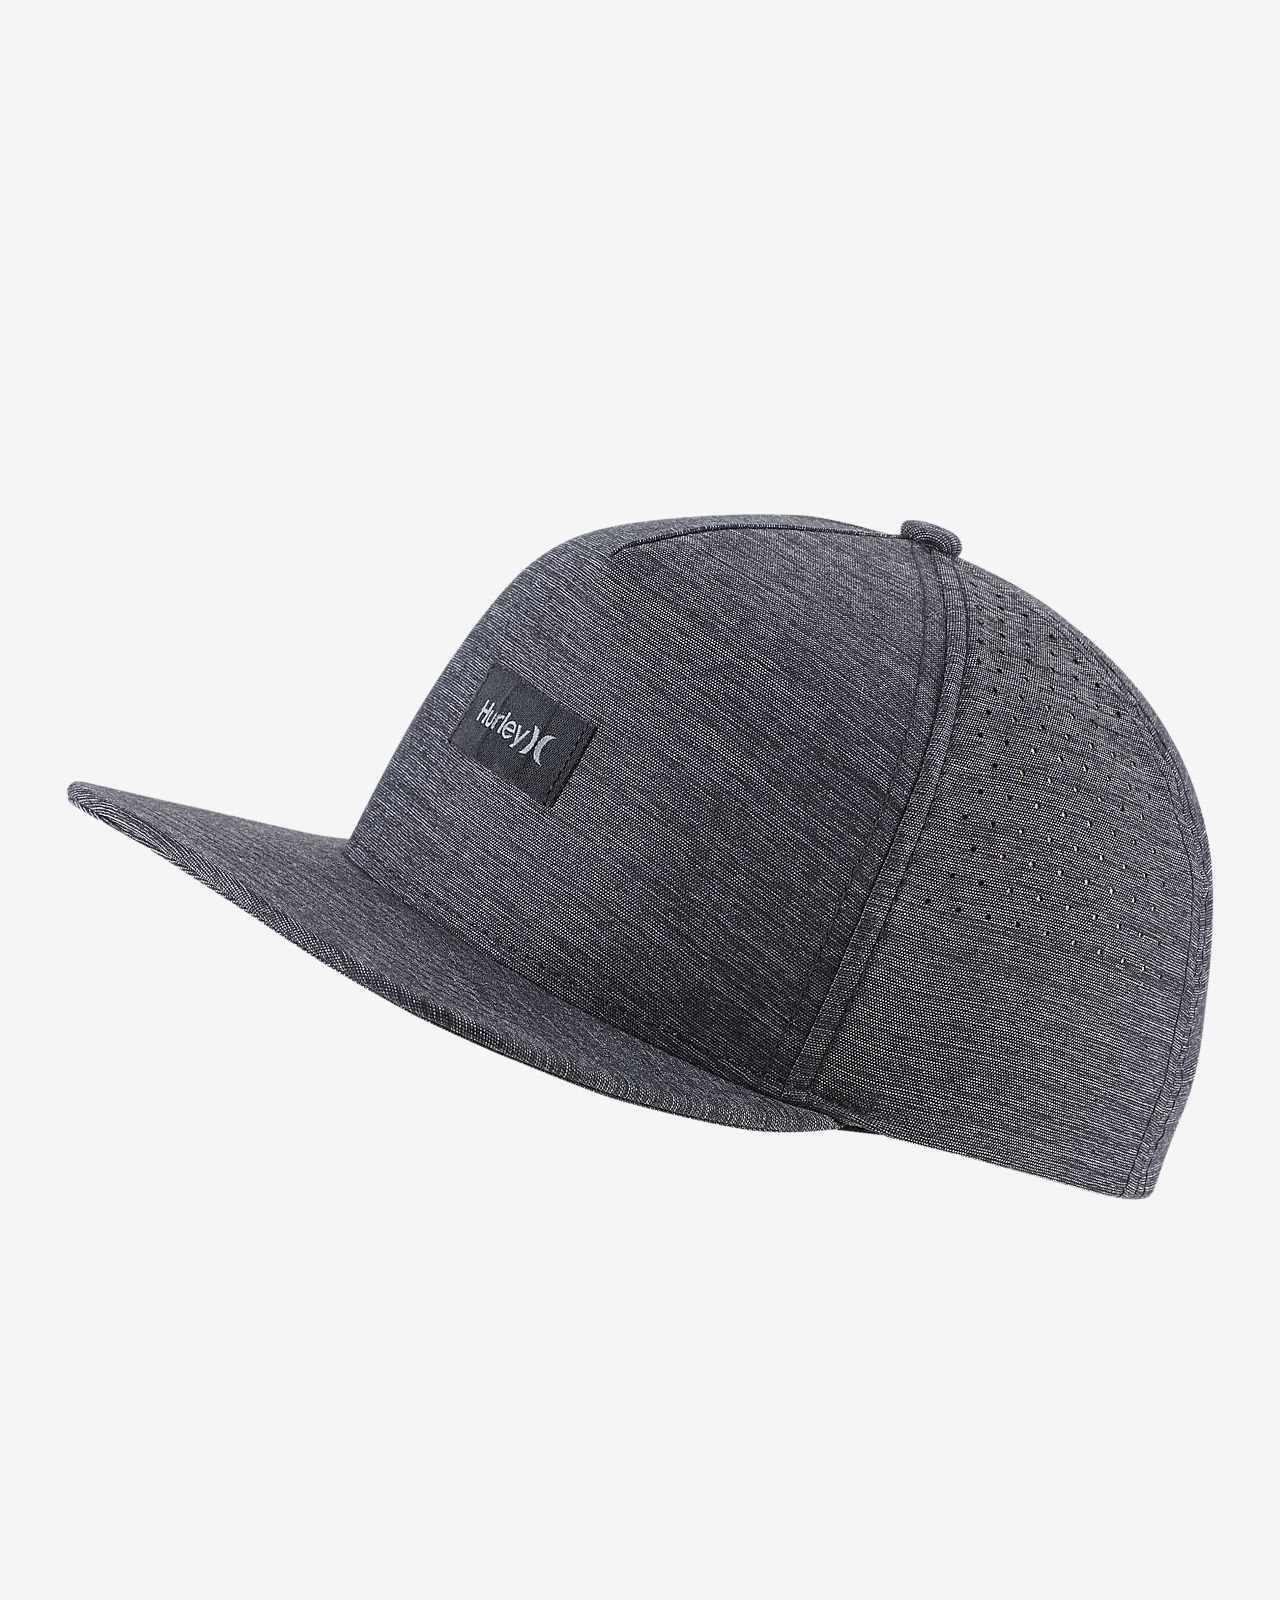 Hurley Dri-FIT Staple Adjustable Hat